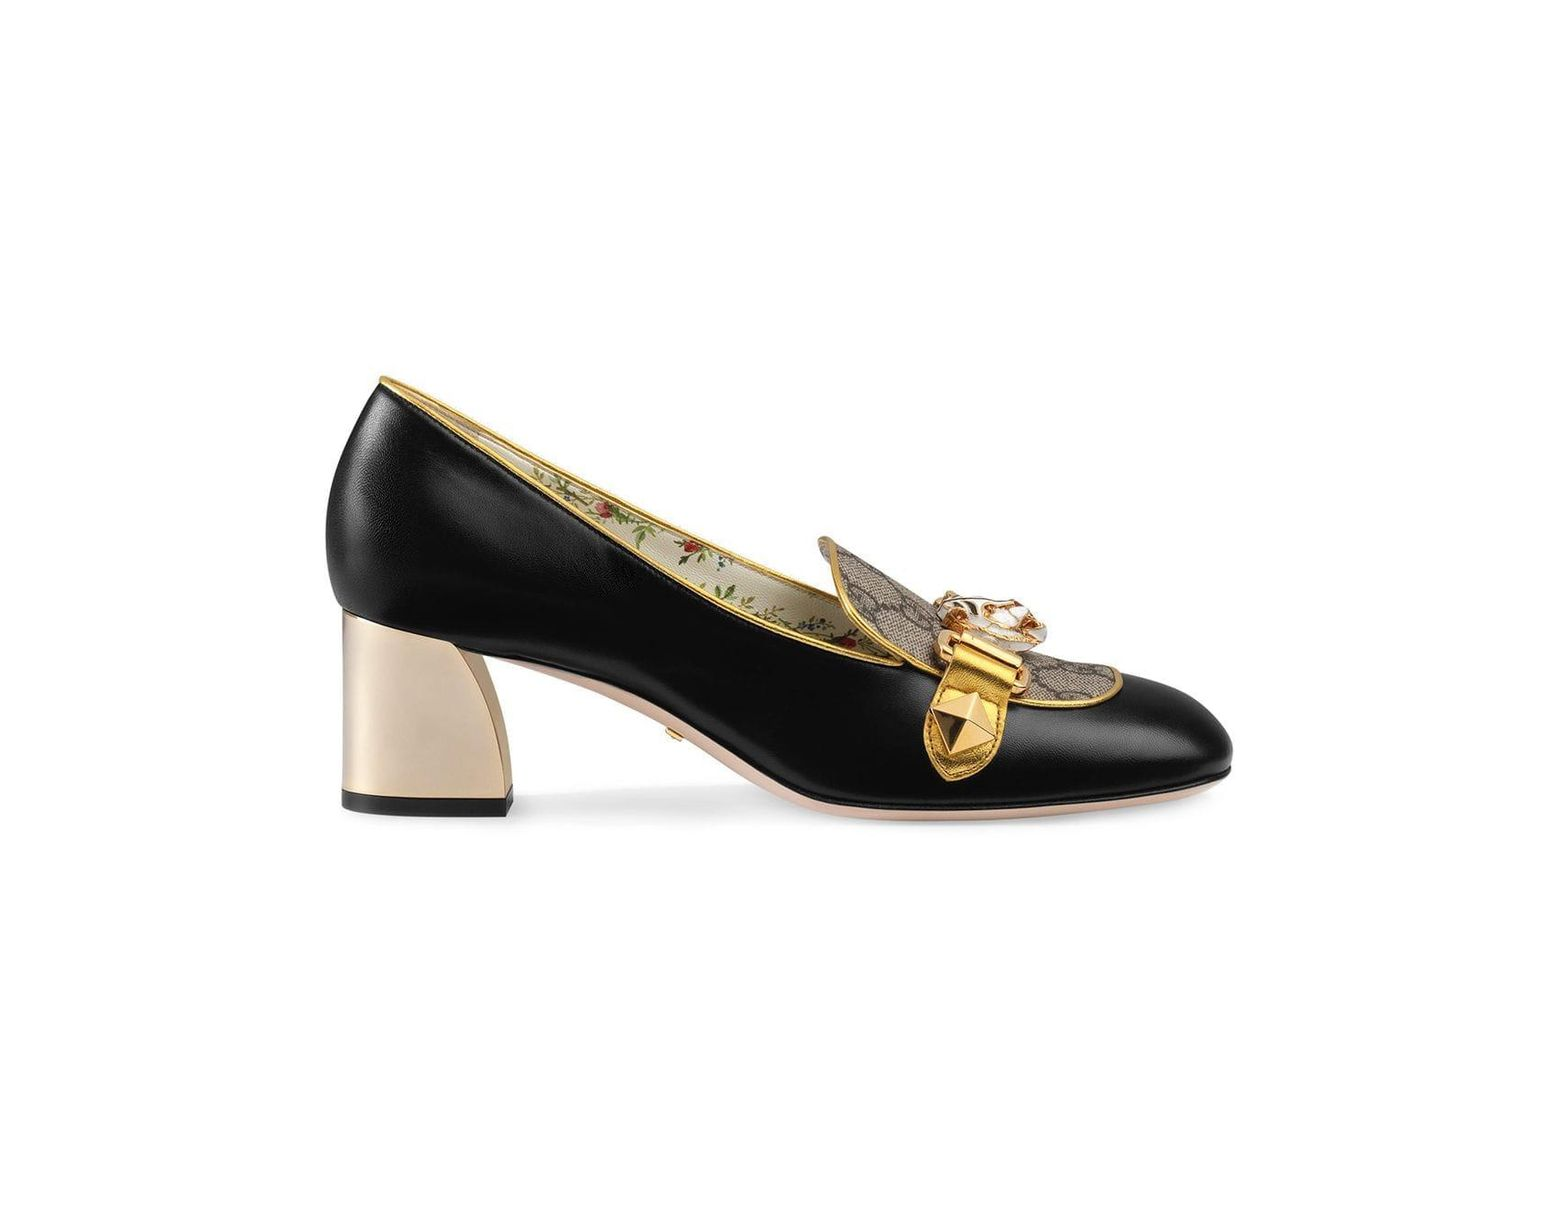 465772ef9 Gucci Leather And GG Supreme Mid-heel Pumps in Black - Lyst